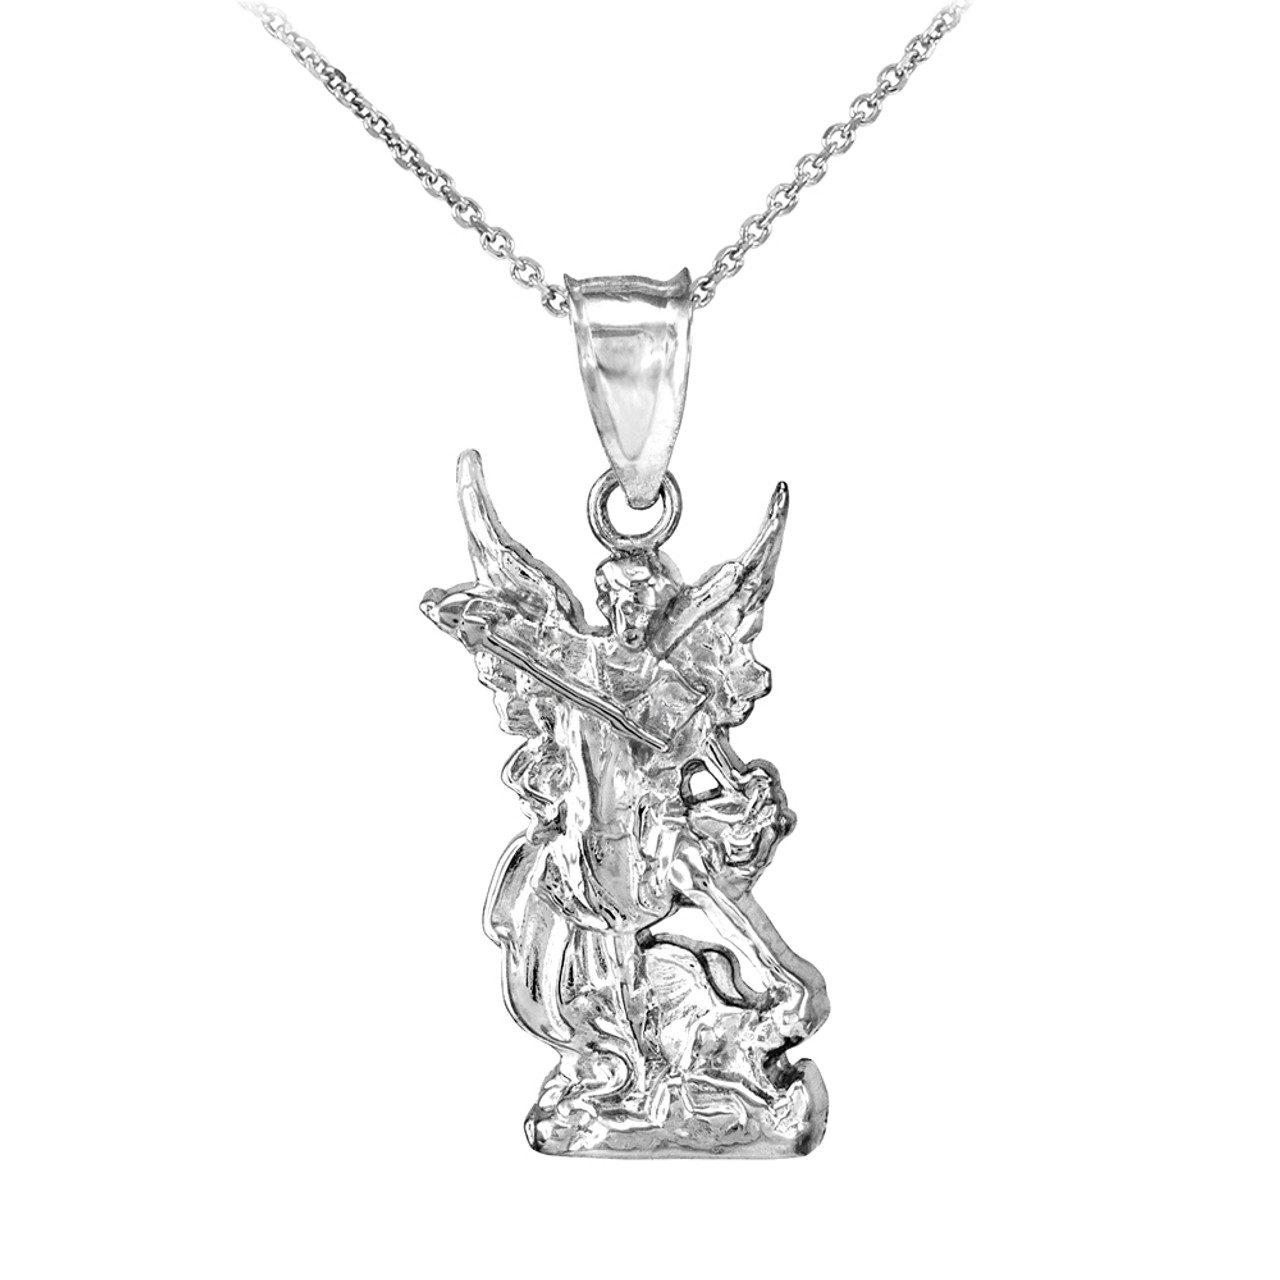 necklace archangel pendant angel michaels bling sterling st ps the guardian jewelry az michael silver